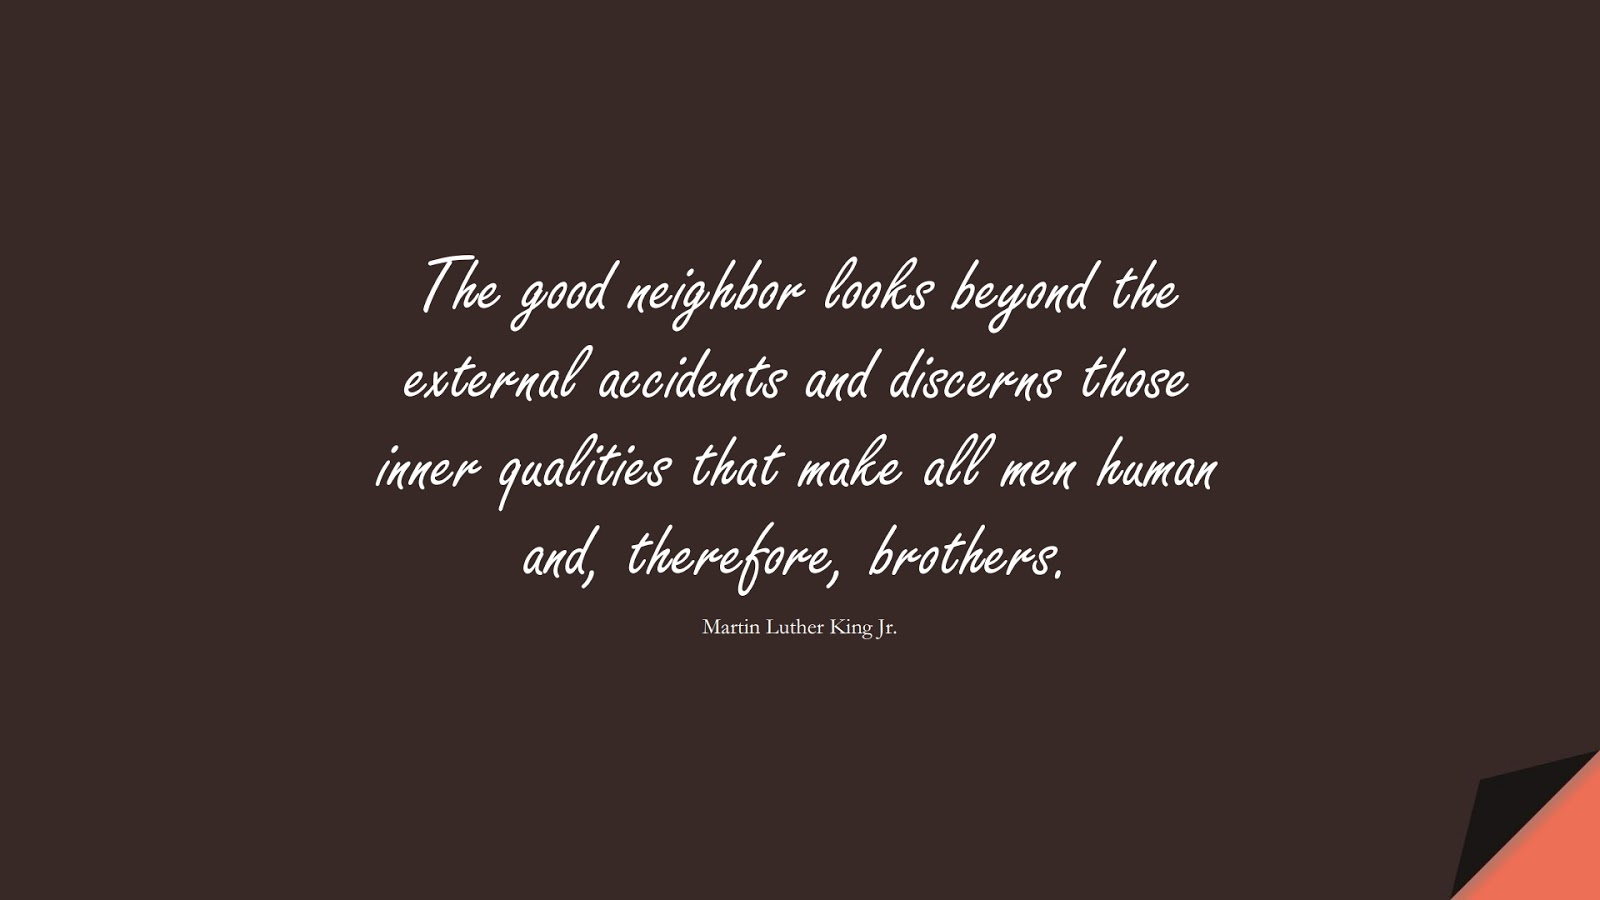 The good neighbor looks beyond the external accidents and discerns those inner qualities that make all men human and, therefore, brothers. (Martin Luther King Jr.);  #MartinLutherKingJrQuotes